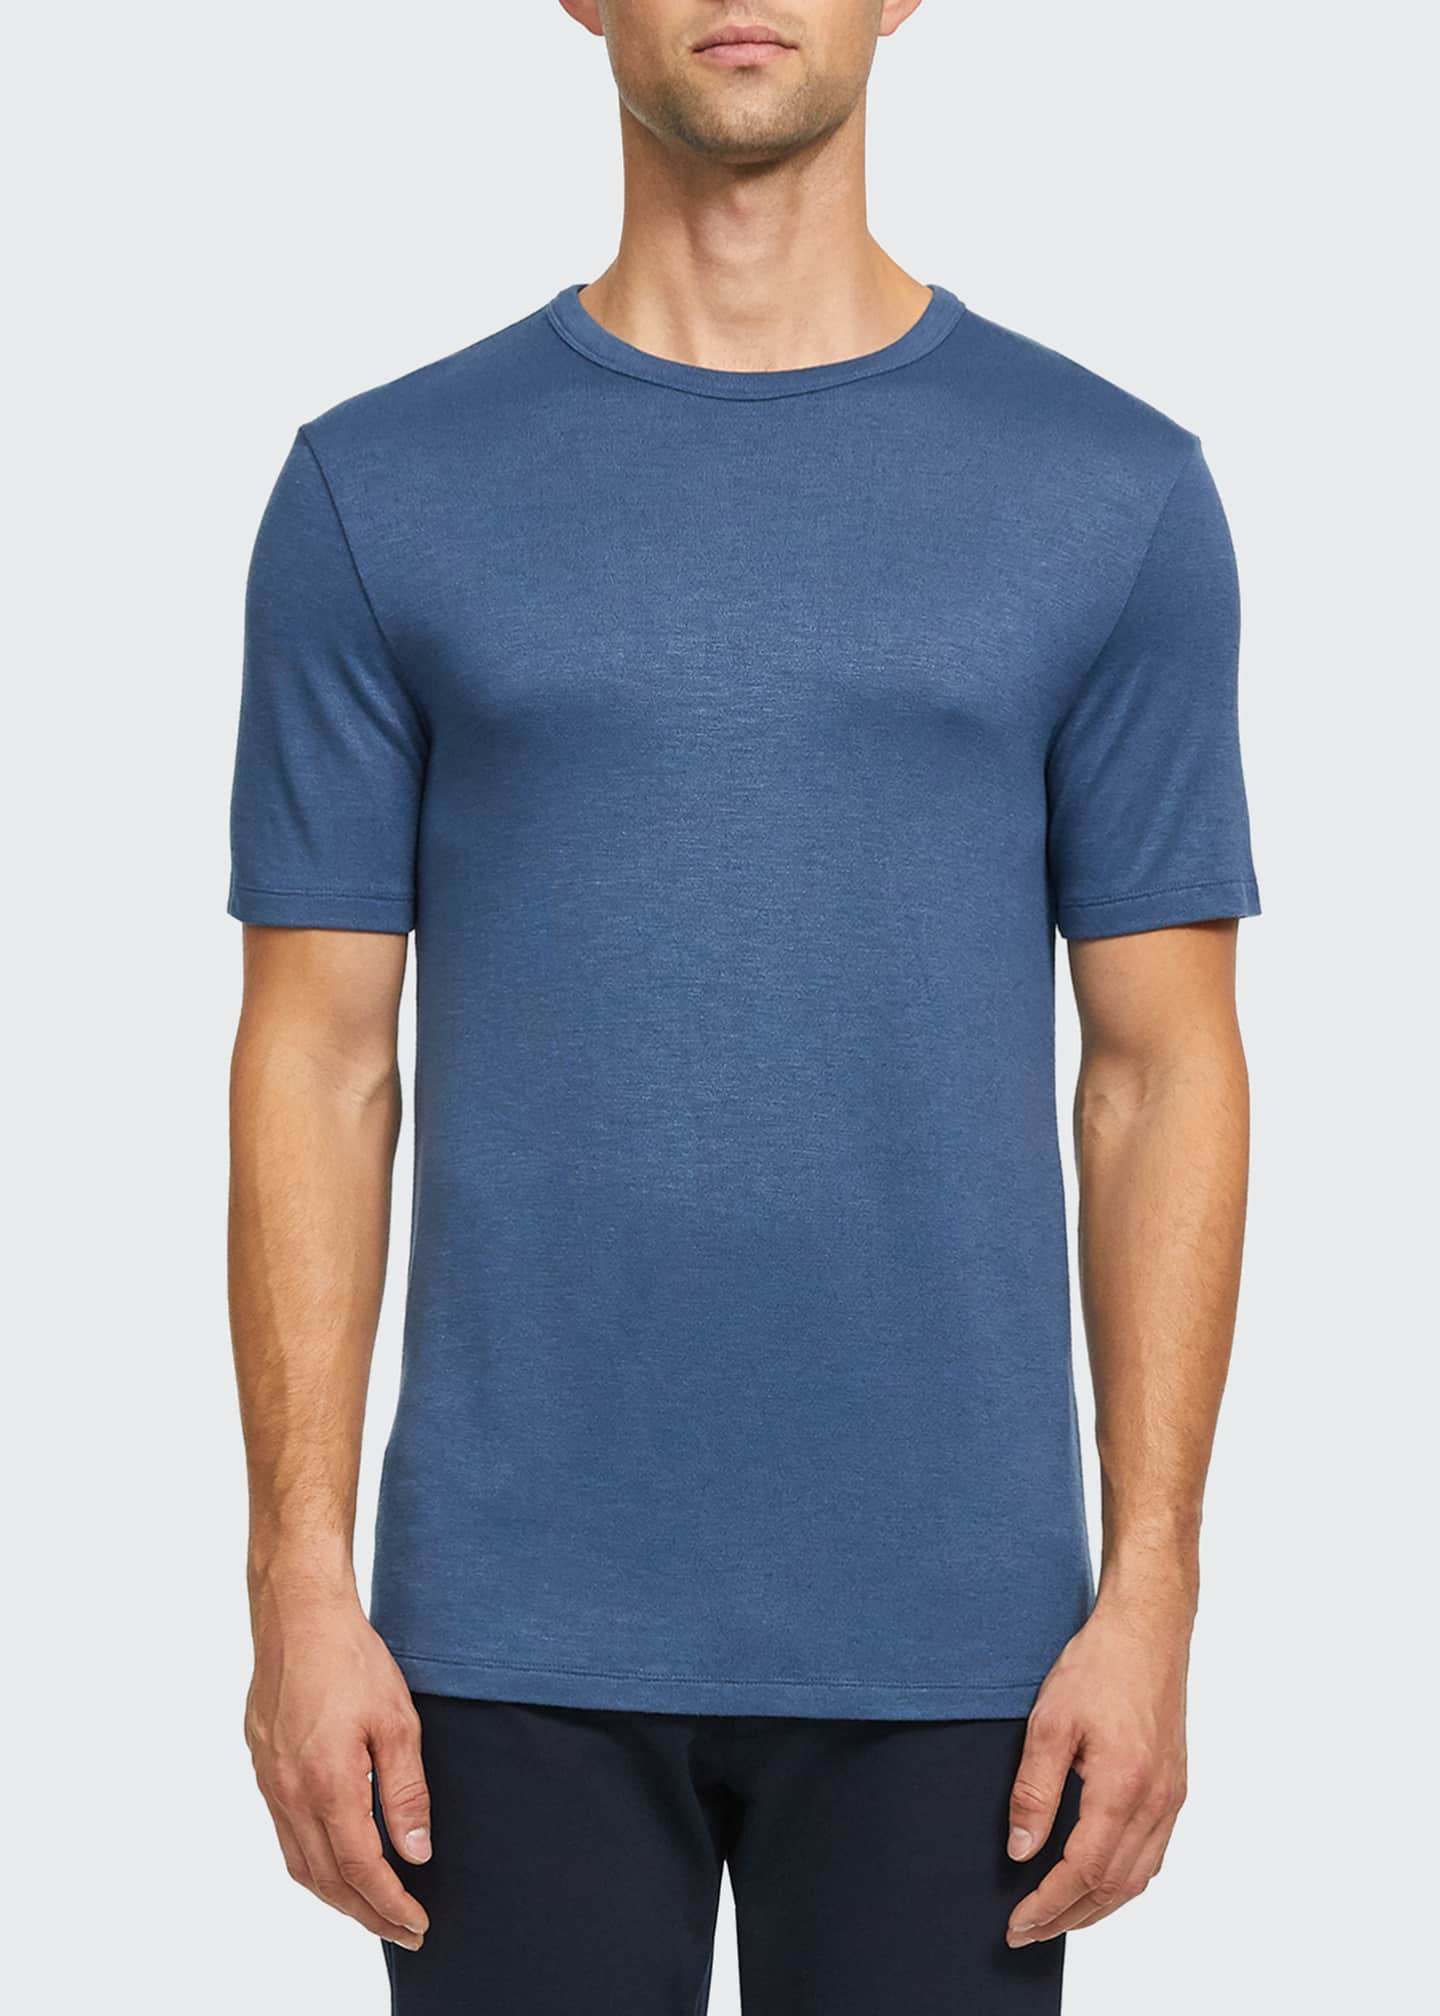 Image 1 of 2: Men's Anemone Essential T-Shirt